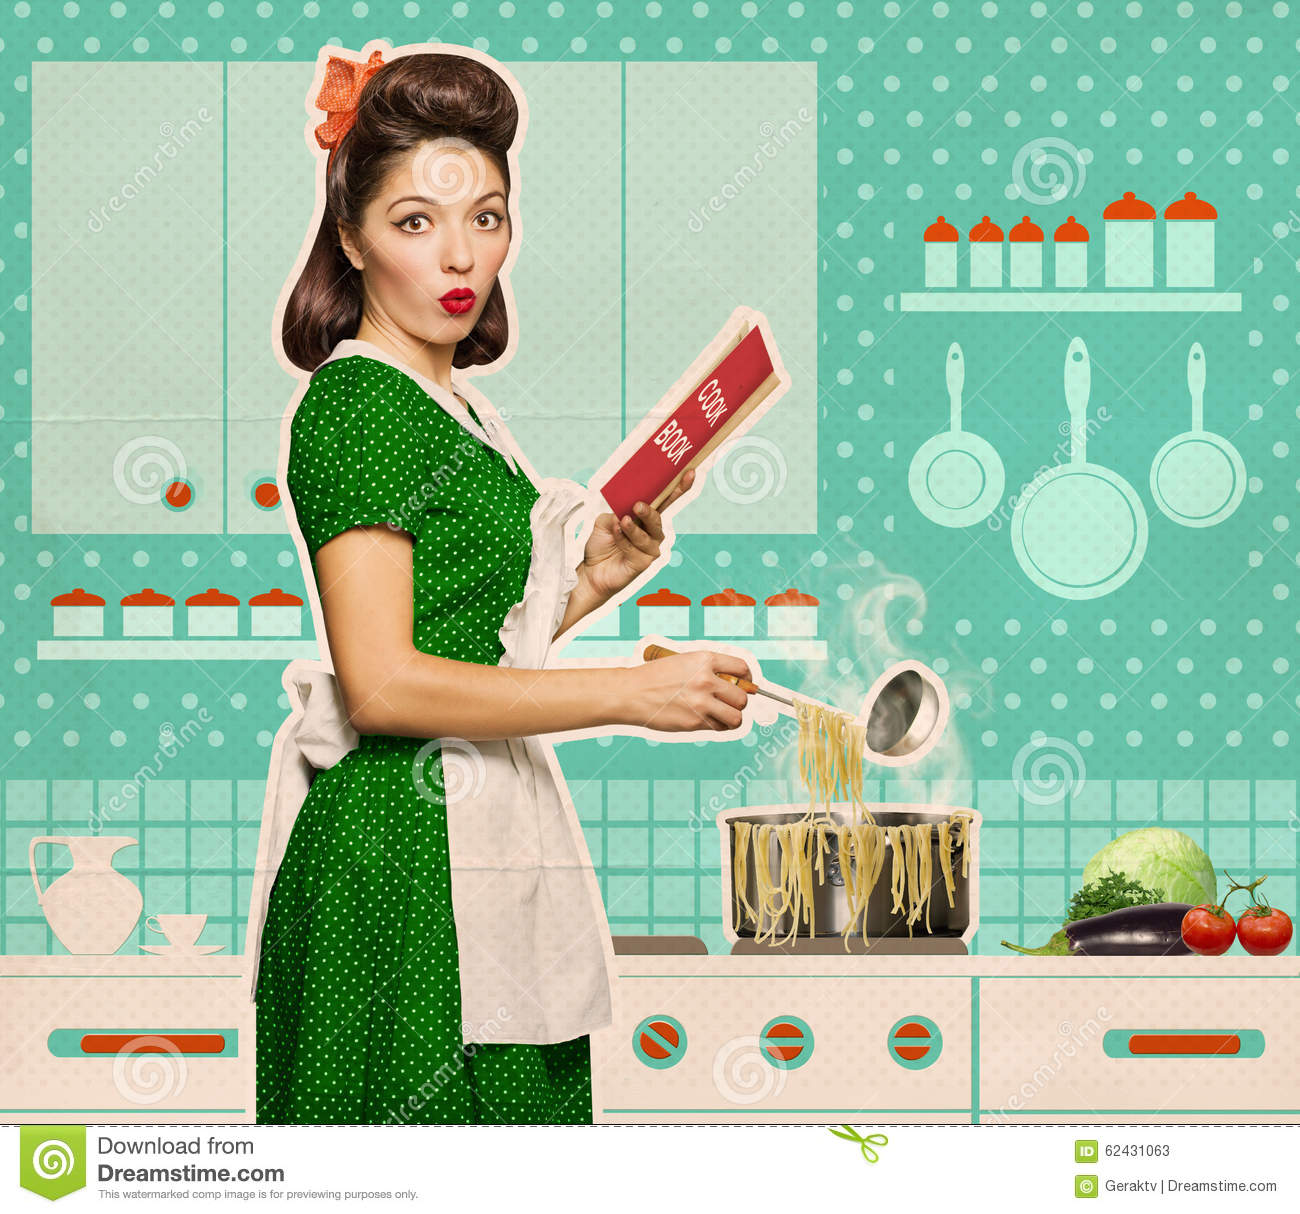 Retro Woman In Kitchen: Retro Young Woman Cooking Spaghettei And Reading Recipe